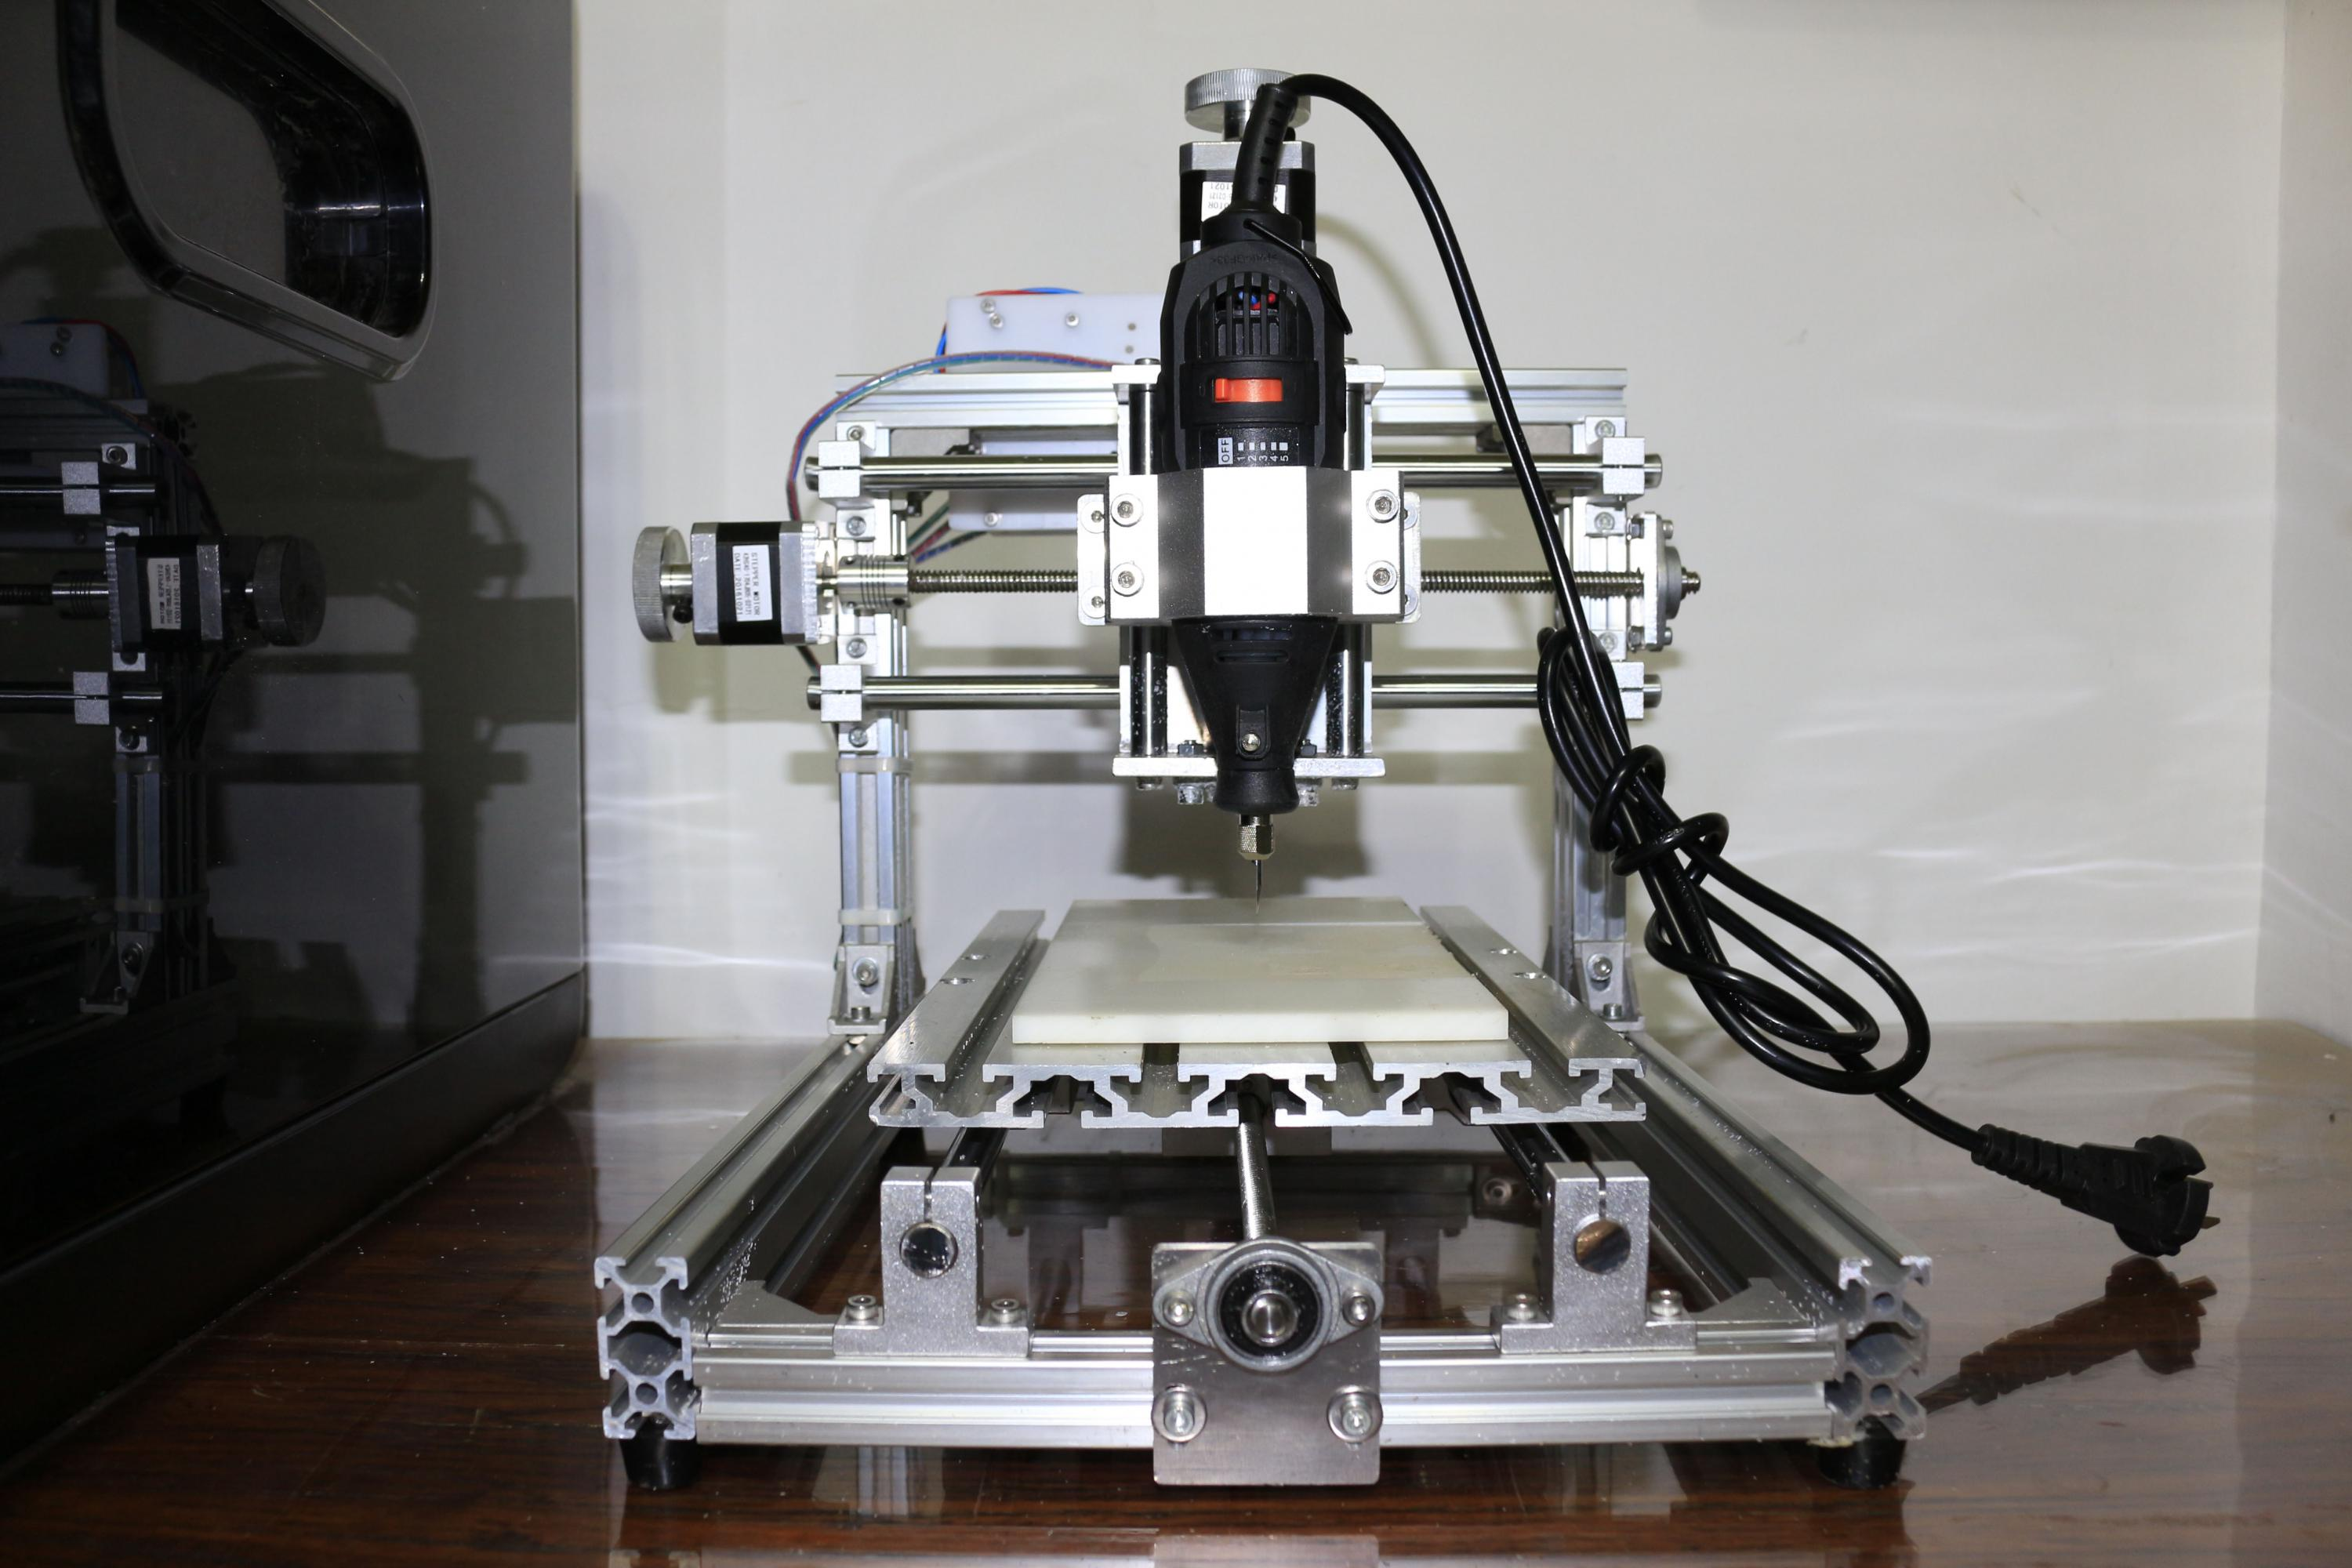 Diy Engraving Machine (be Carved Acrylic, Double Color Boards, 46 Soft Metal Aluminum Alloy Nameplate, Pcb Etc.)